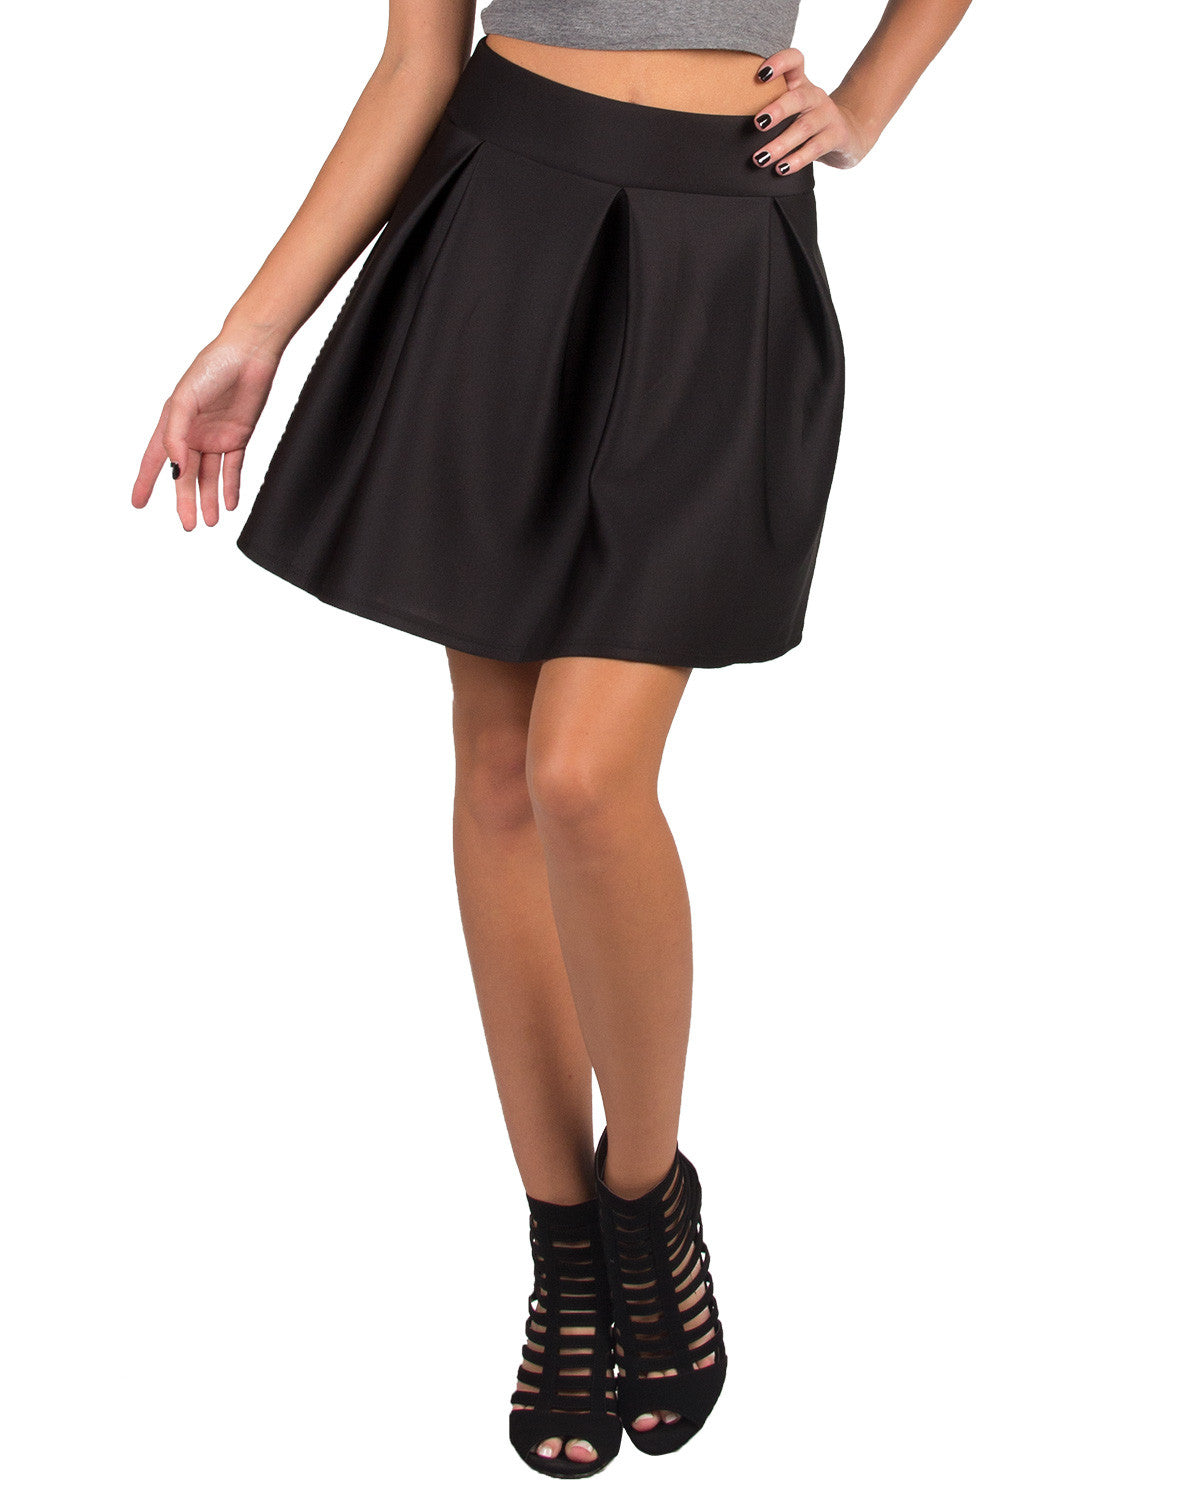 Semi Pleated A-Line Skirt - Ambiance 29067-1-Black